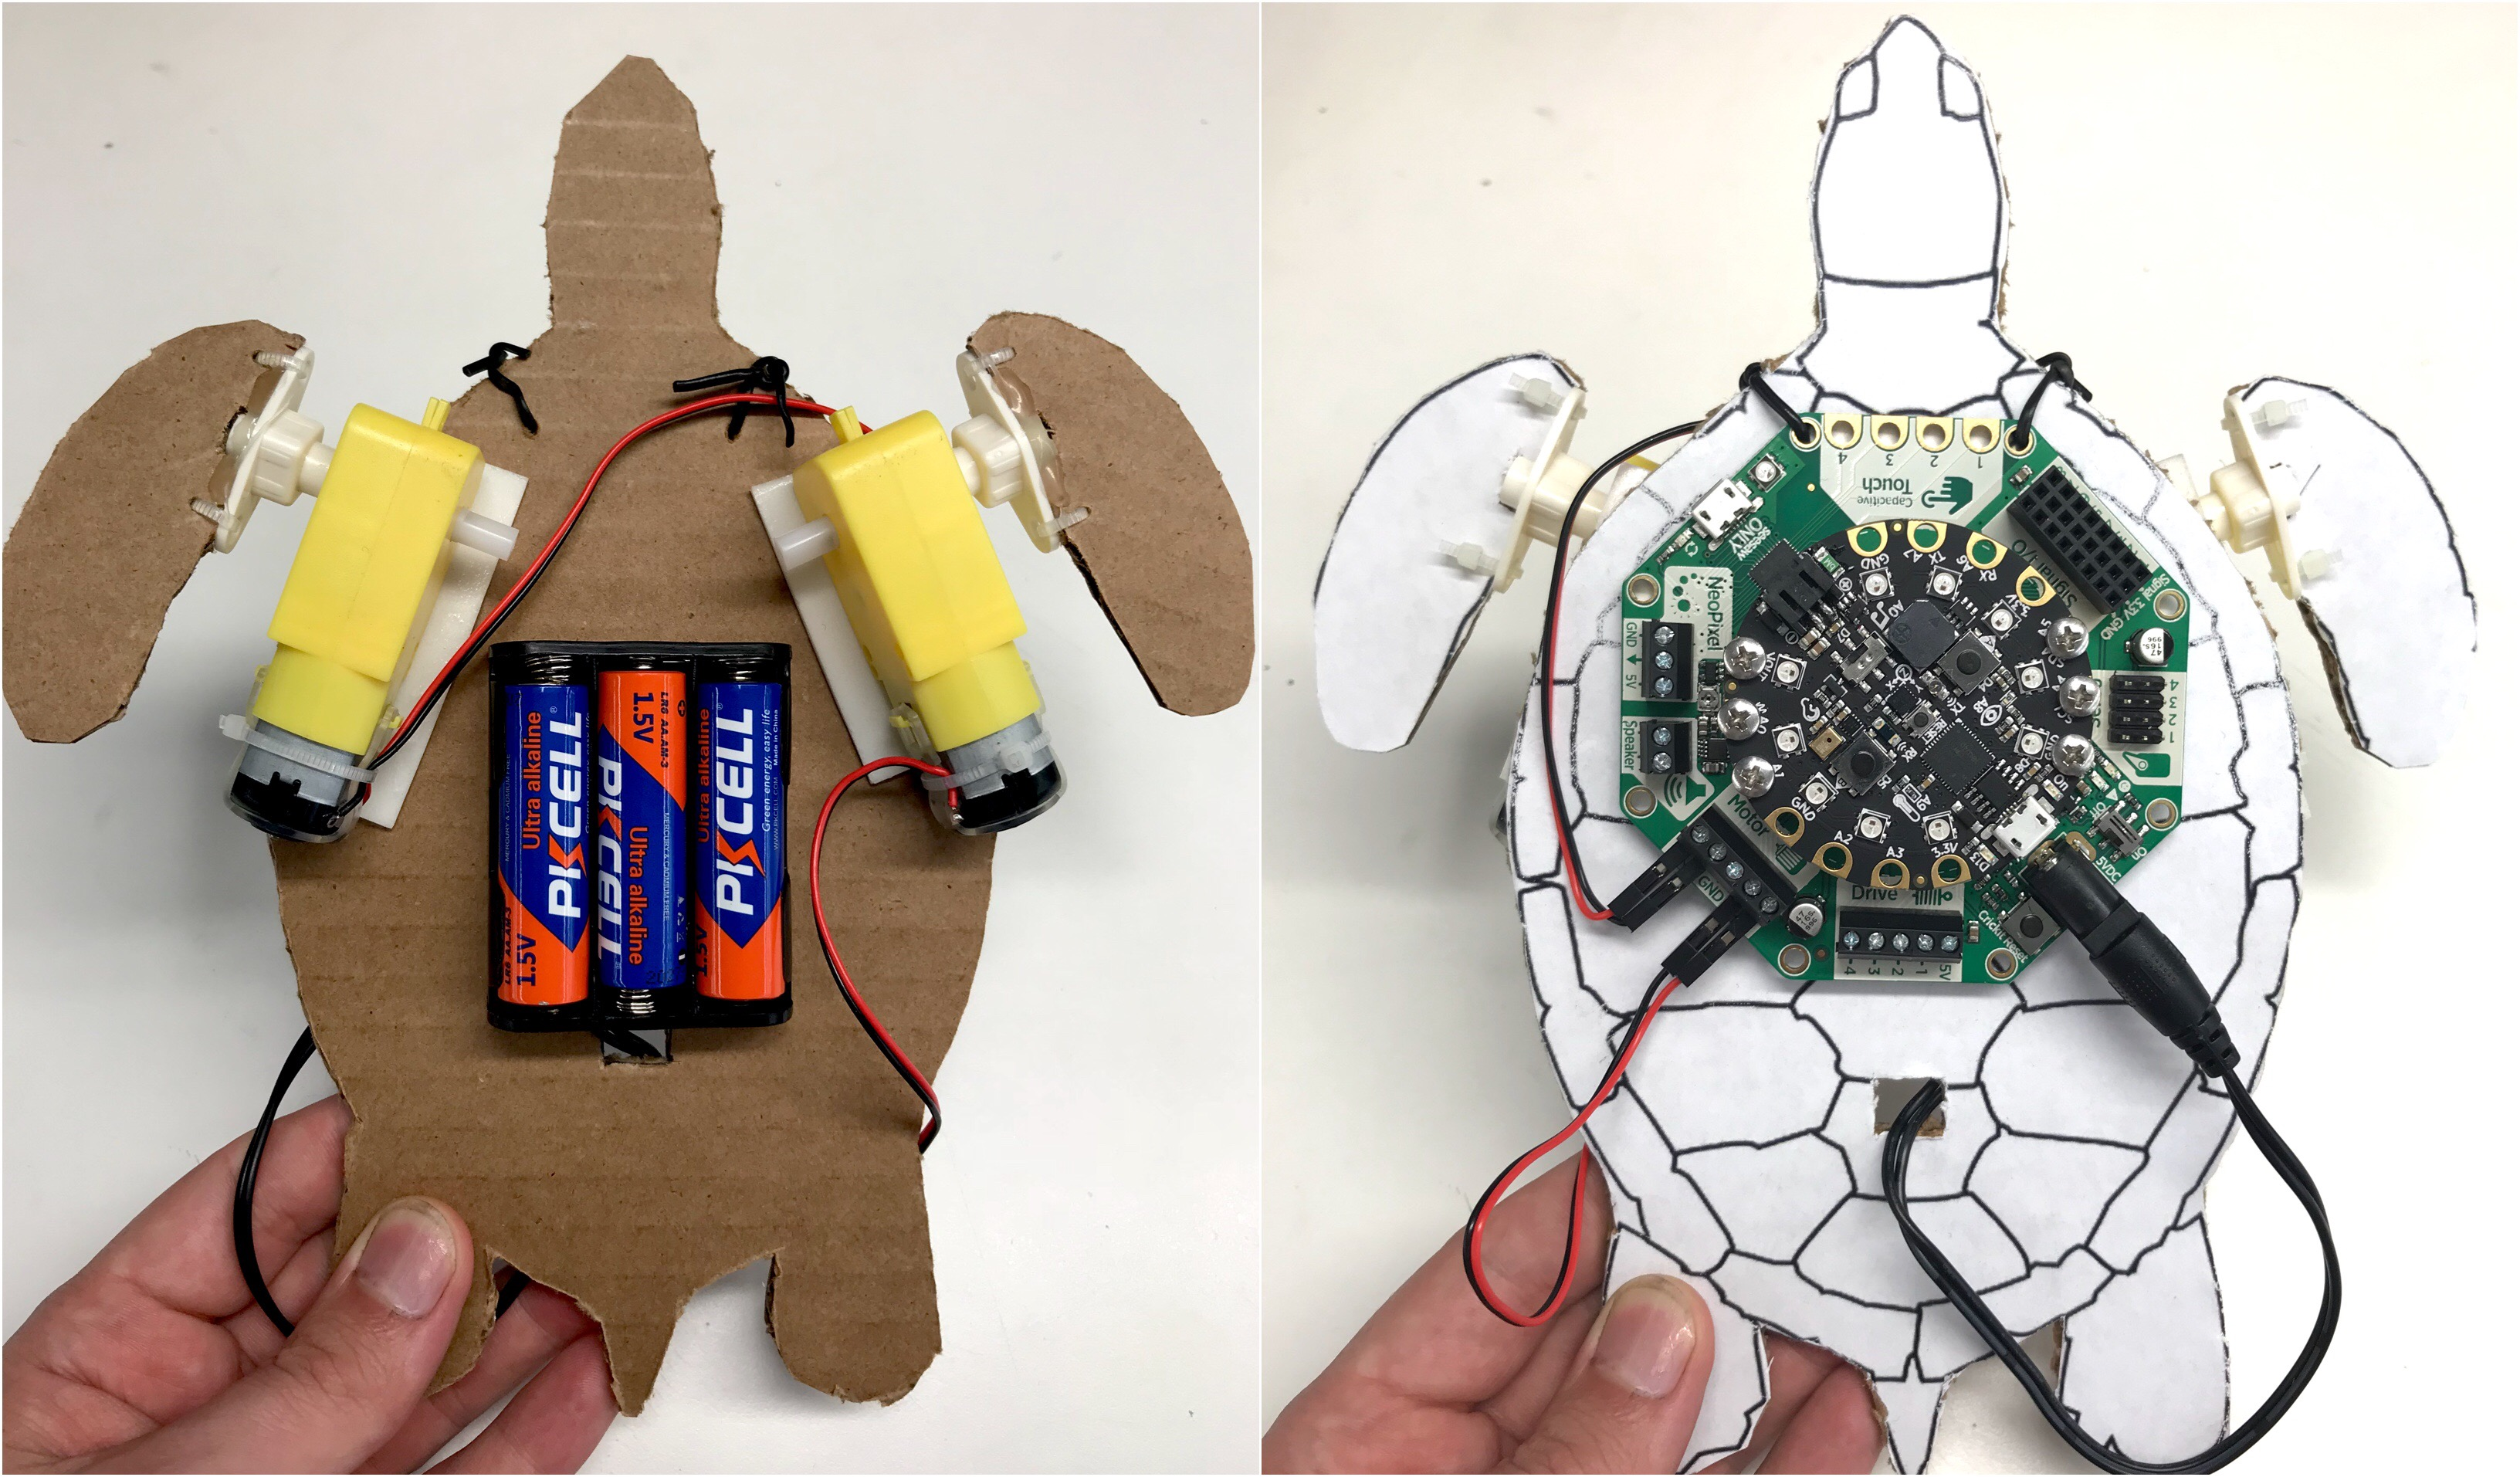 Crickit developmental board on top of cardboard cutout of baby turtle on right, underbelly of same cardboard turtle showing batteries